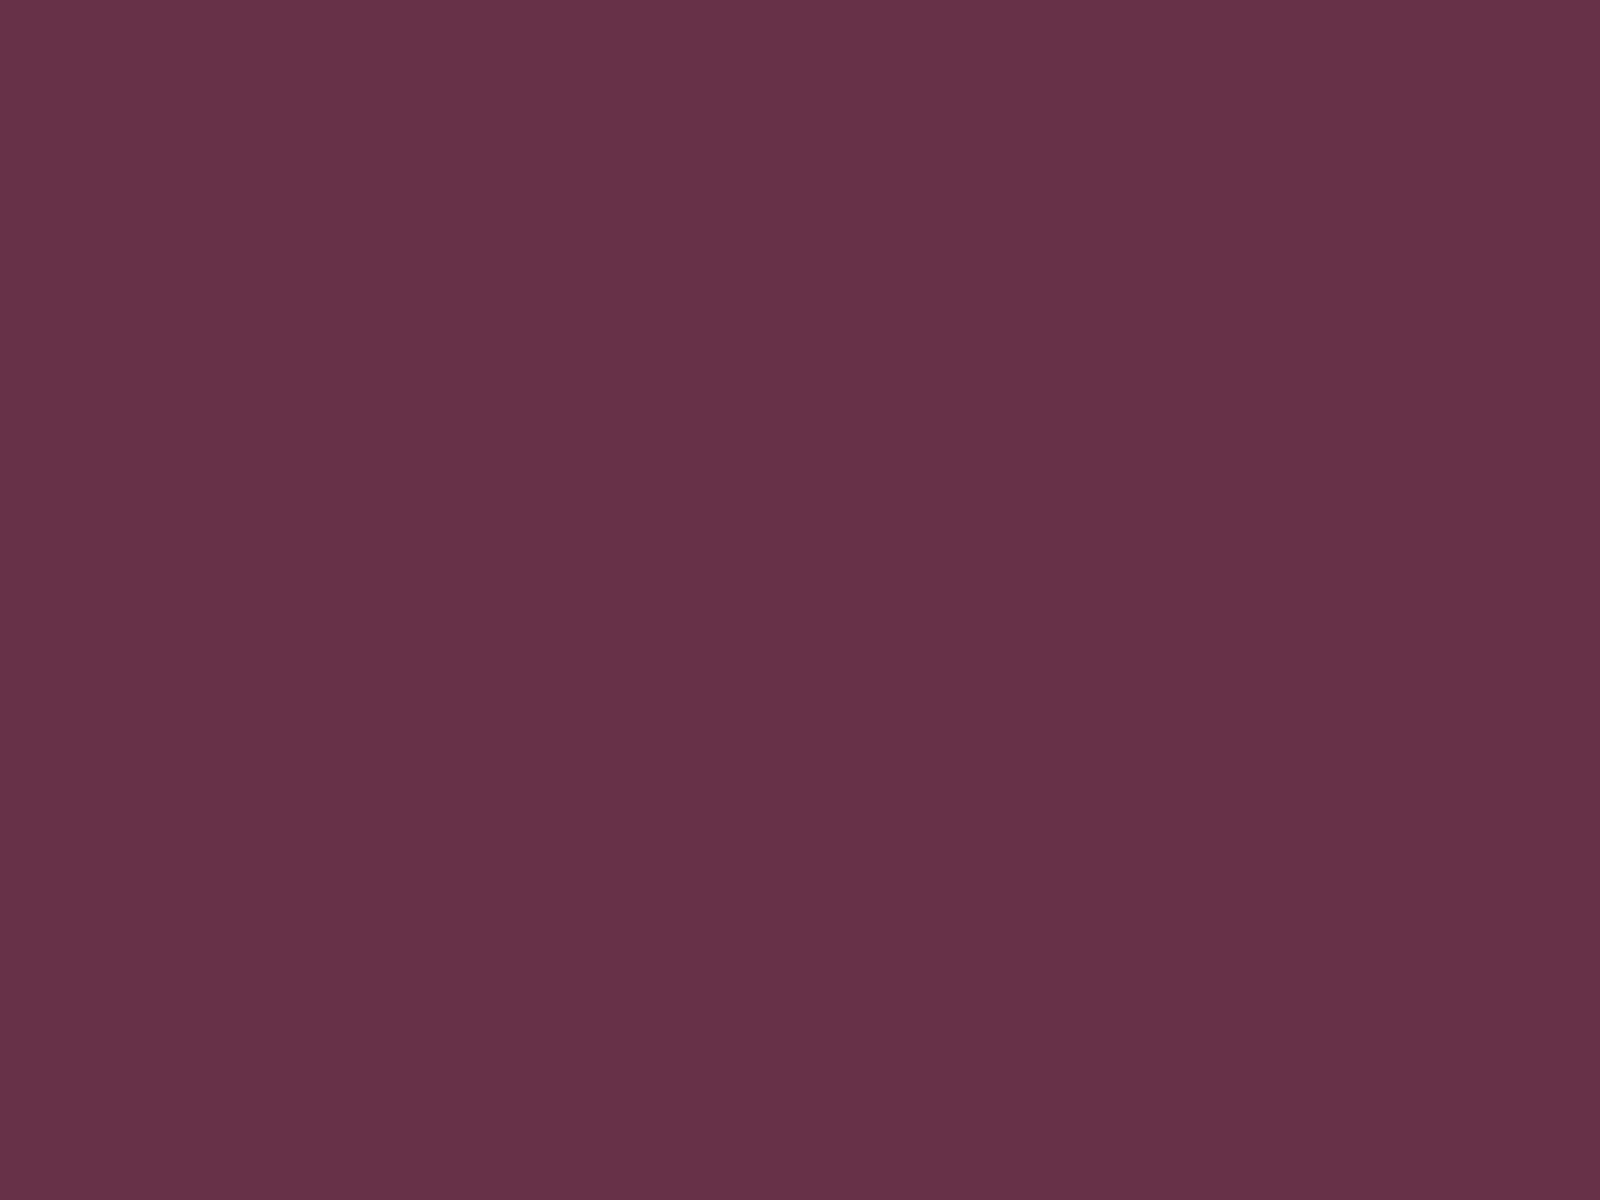 1600x1200 Wine Dregs Solid Color Background